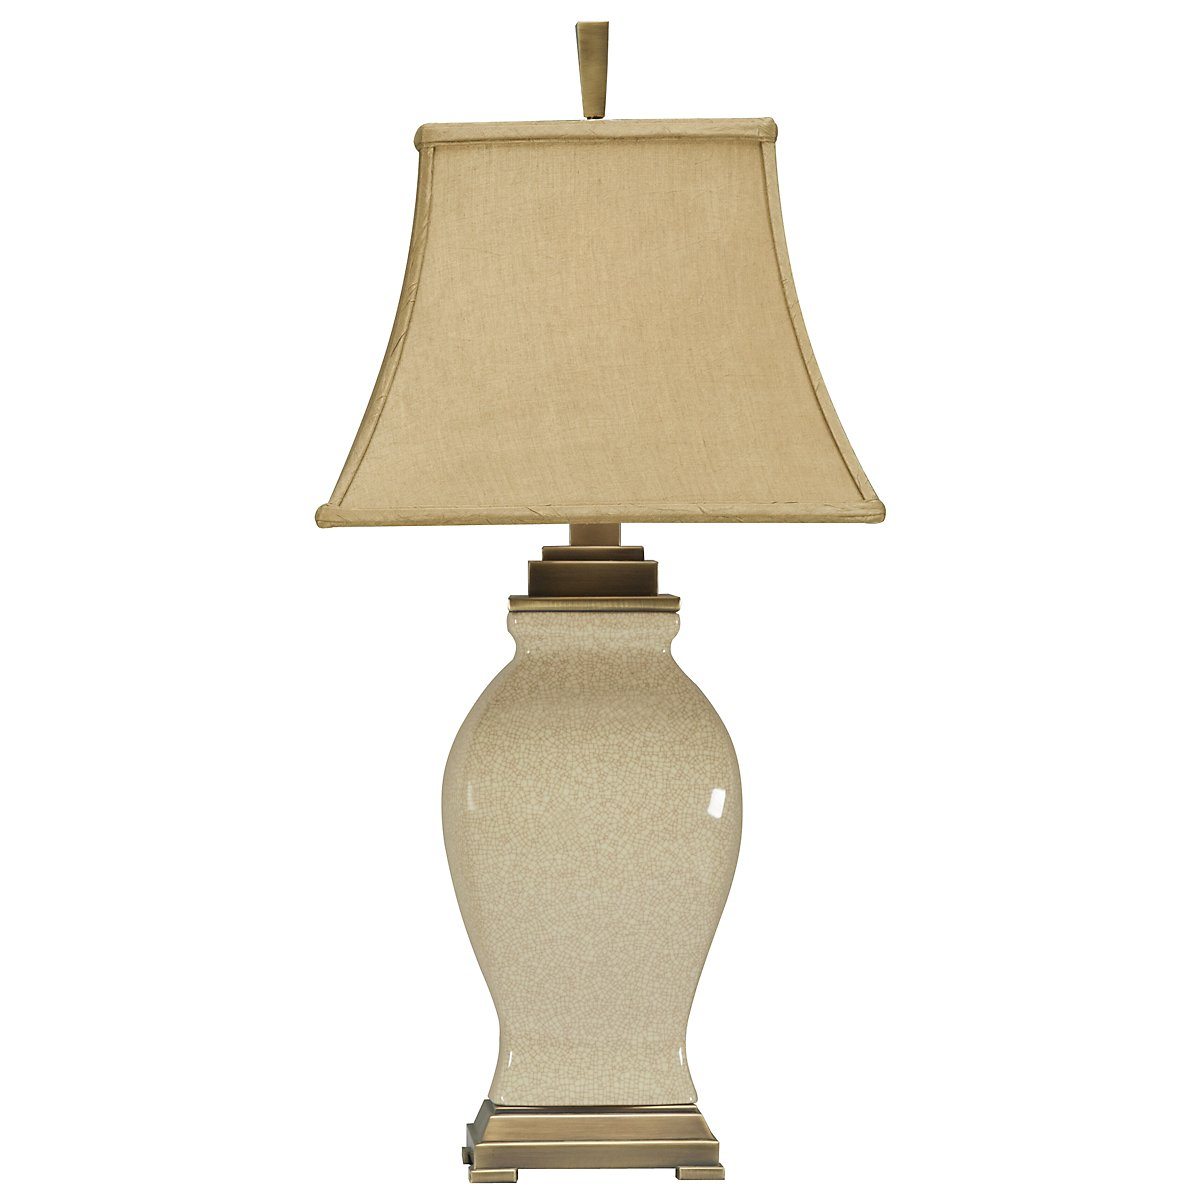 Rory Beige Table Lamp